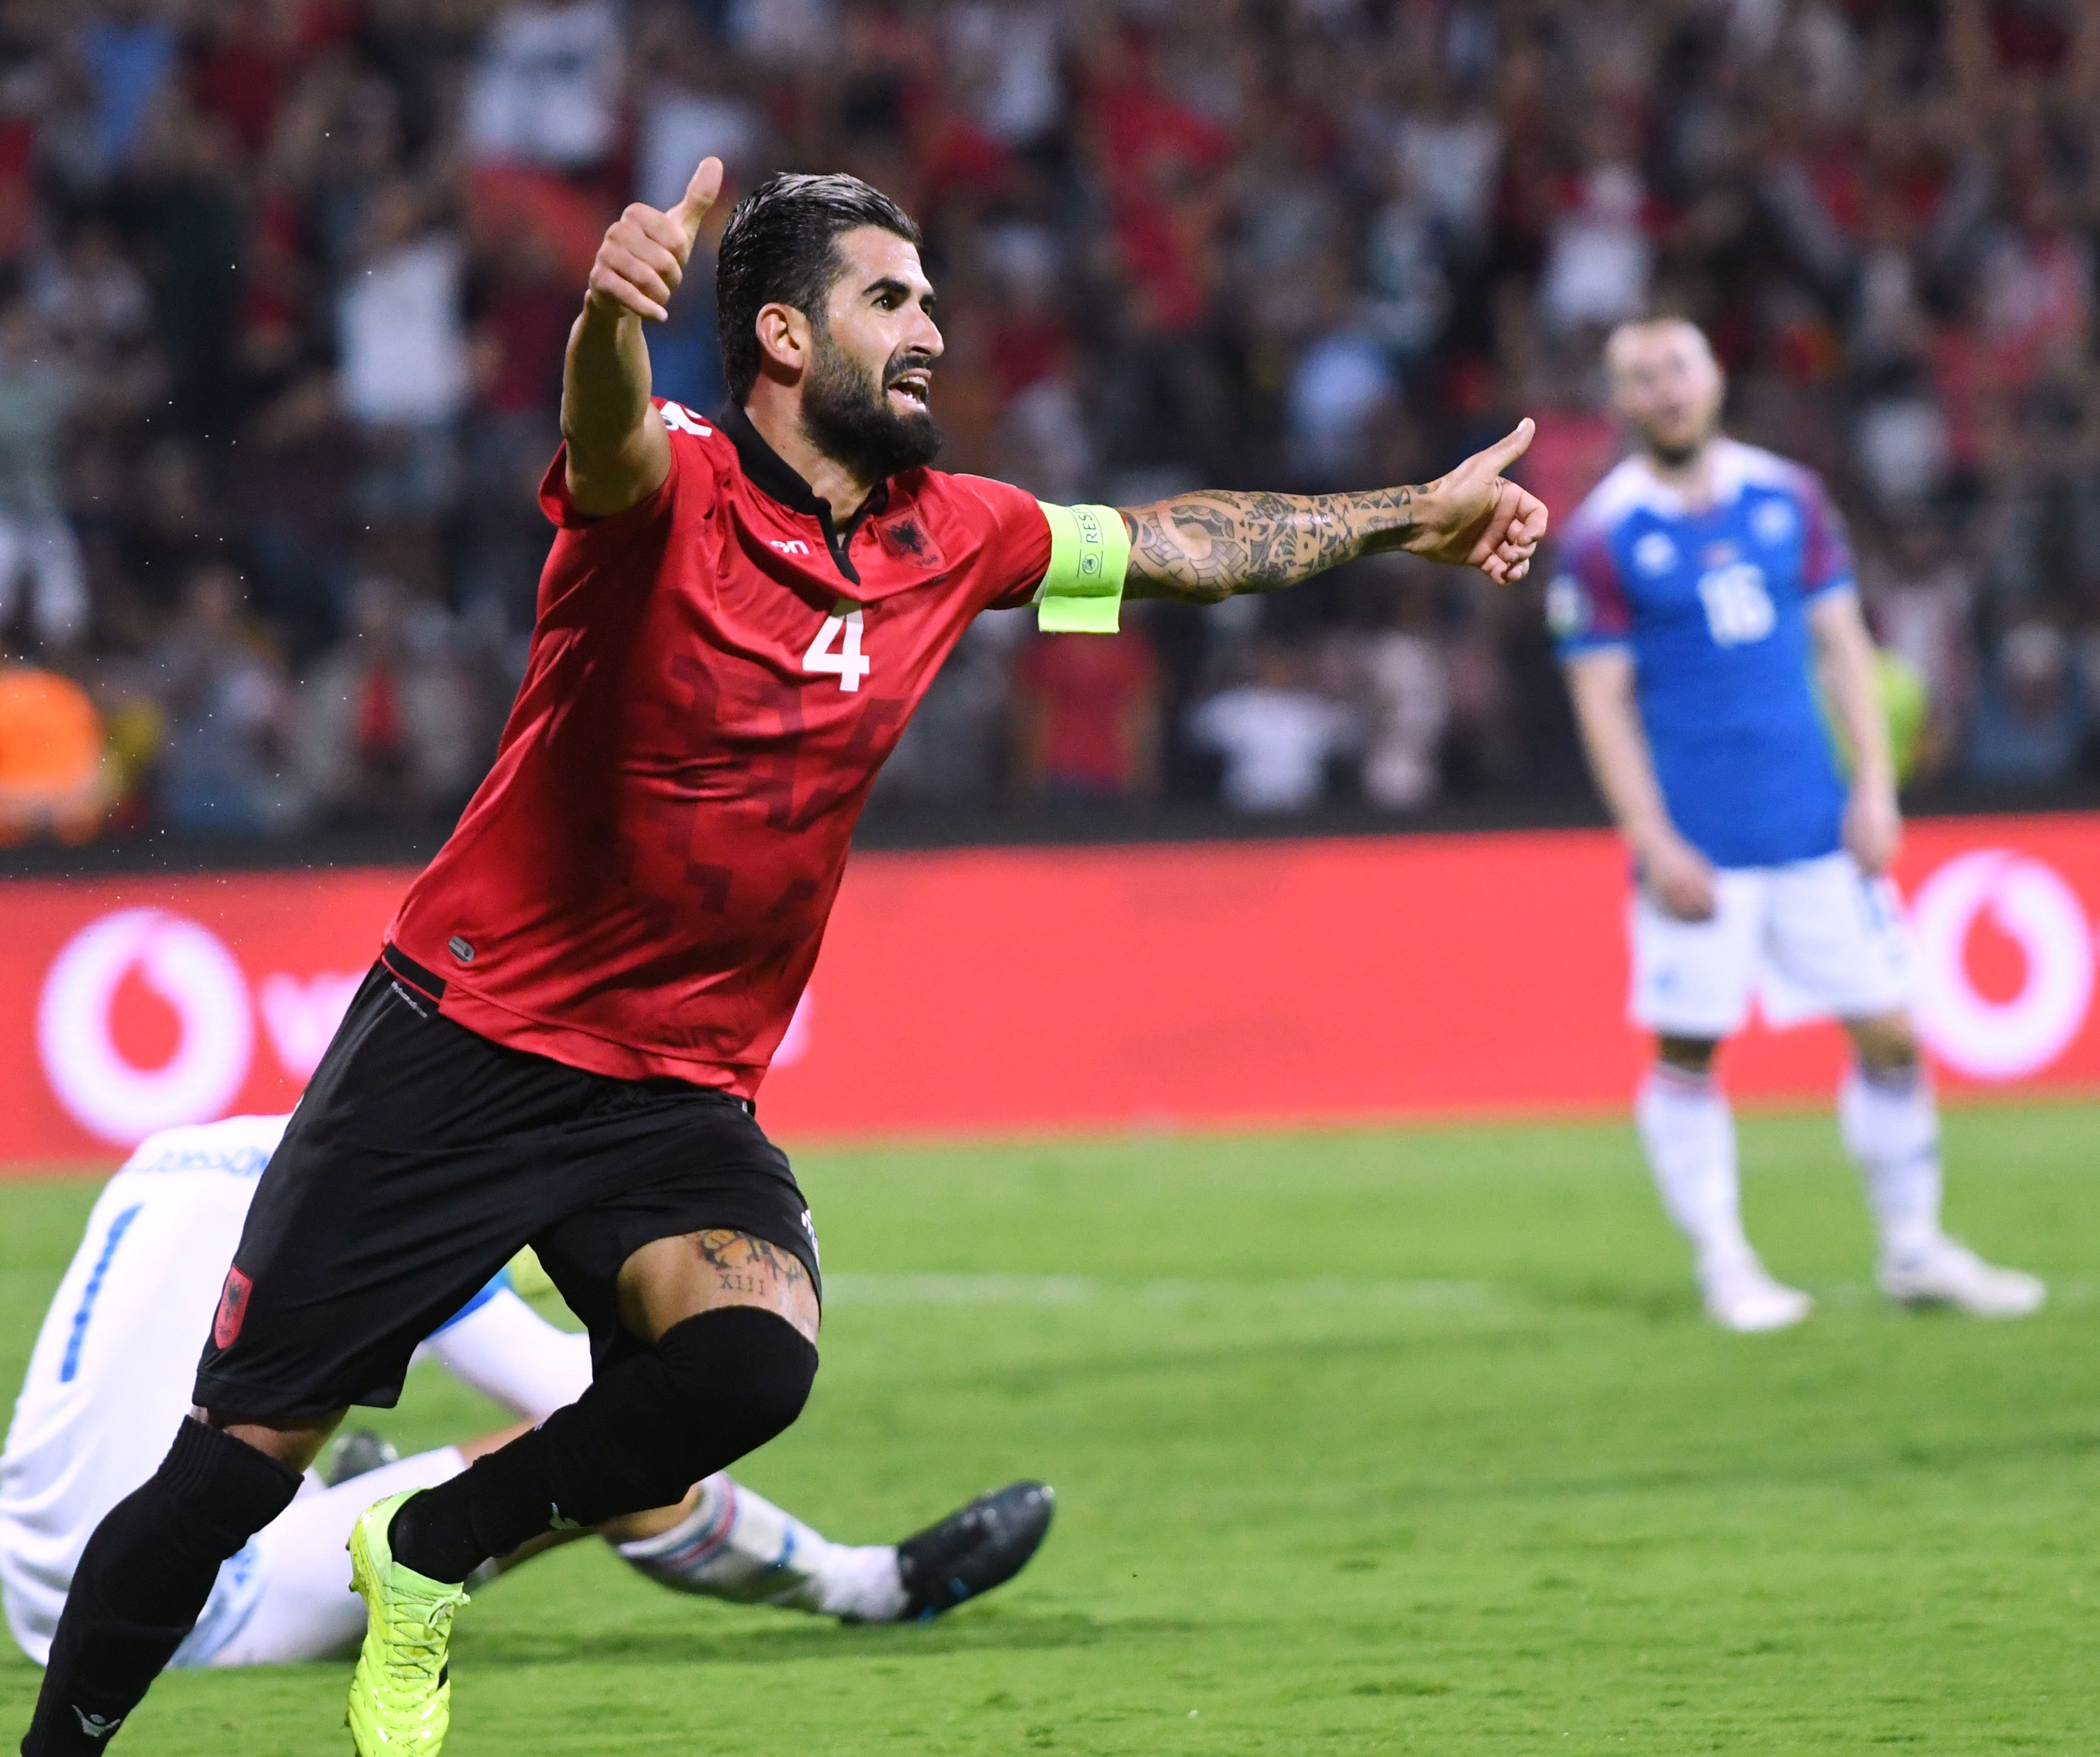 Albania's defender Elseid Hysaj set to return to the starting eleven. (Photo by Gent SHKULLAKU / AFP) (Photo credit should read GENT SHKULLAKU/AFP via Getty Images)